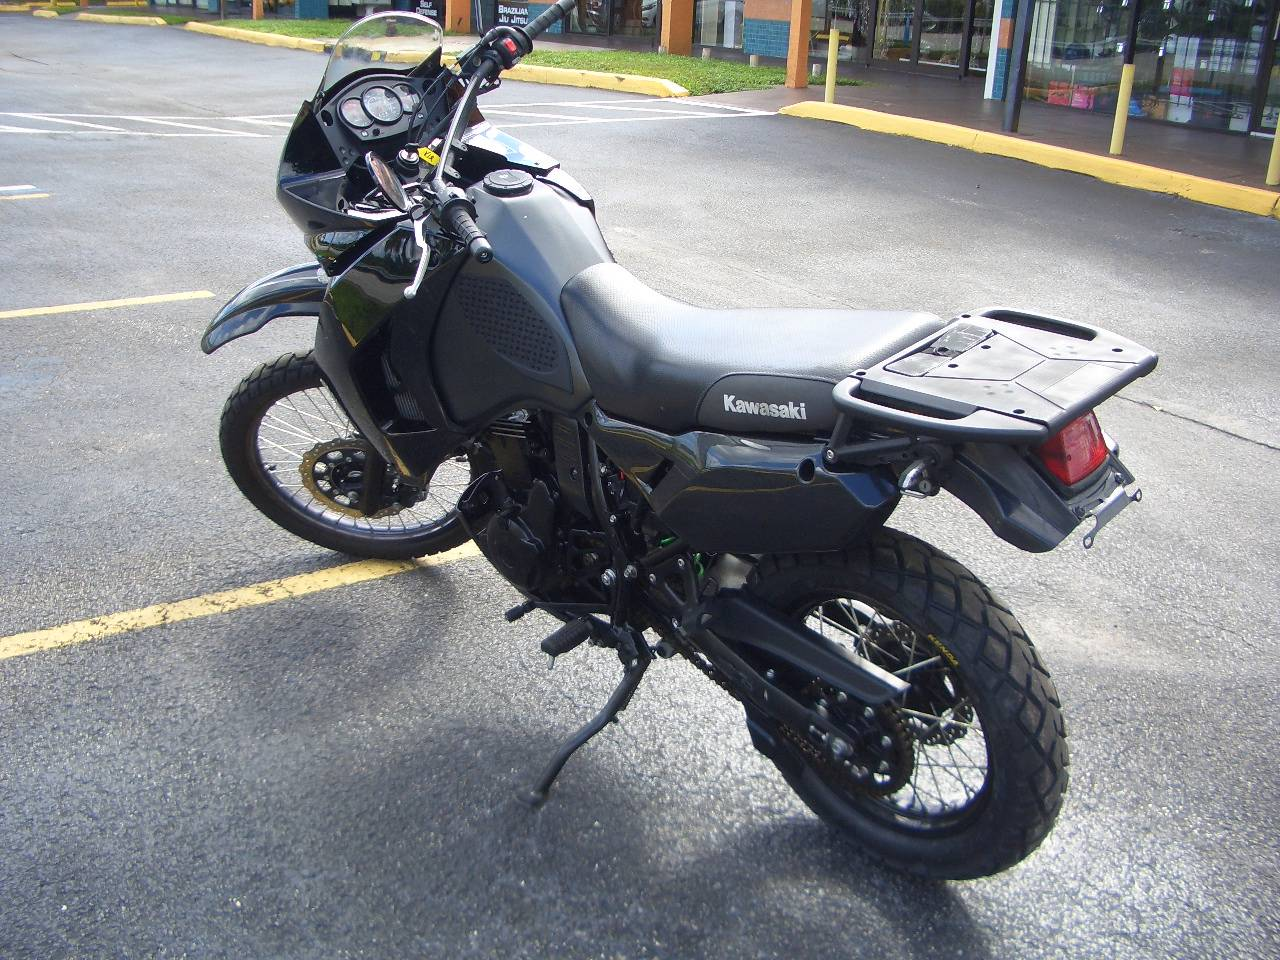 2017 Kawasaki KLR650 in Fort Lauderdale, Florida - Photo 2